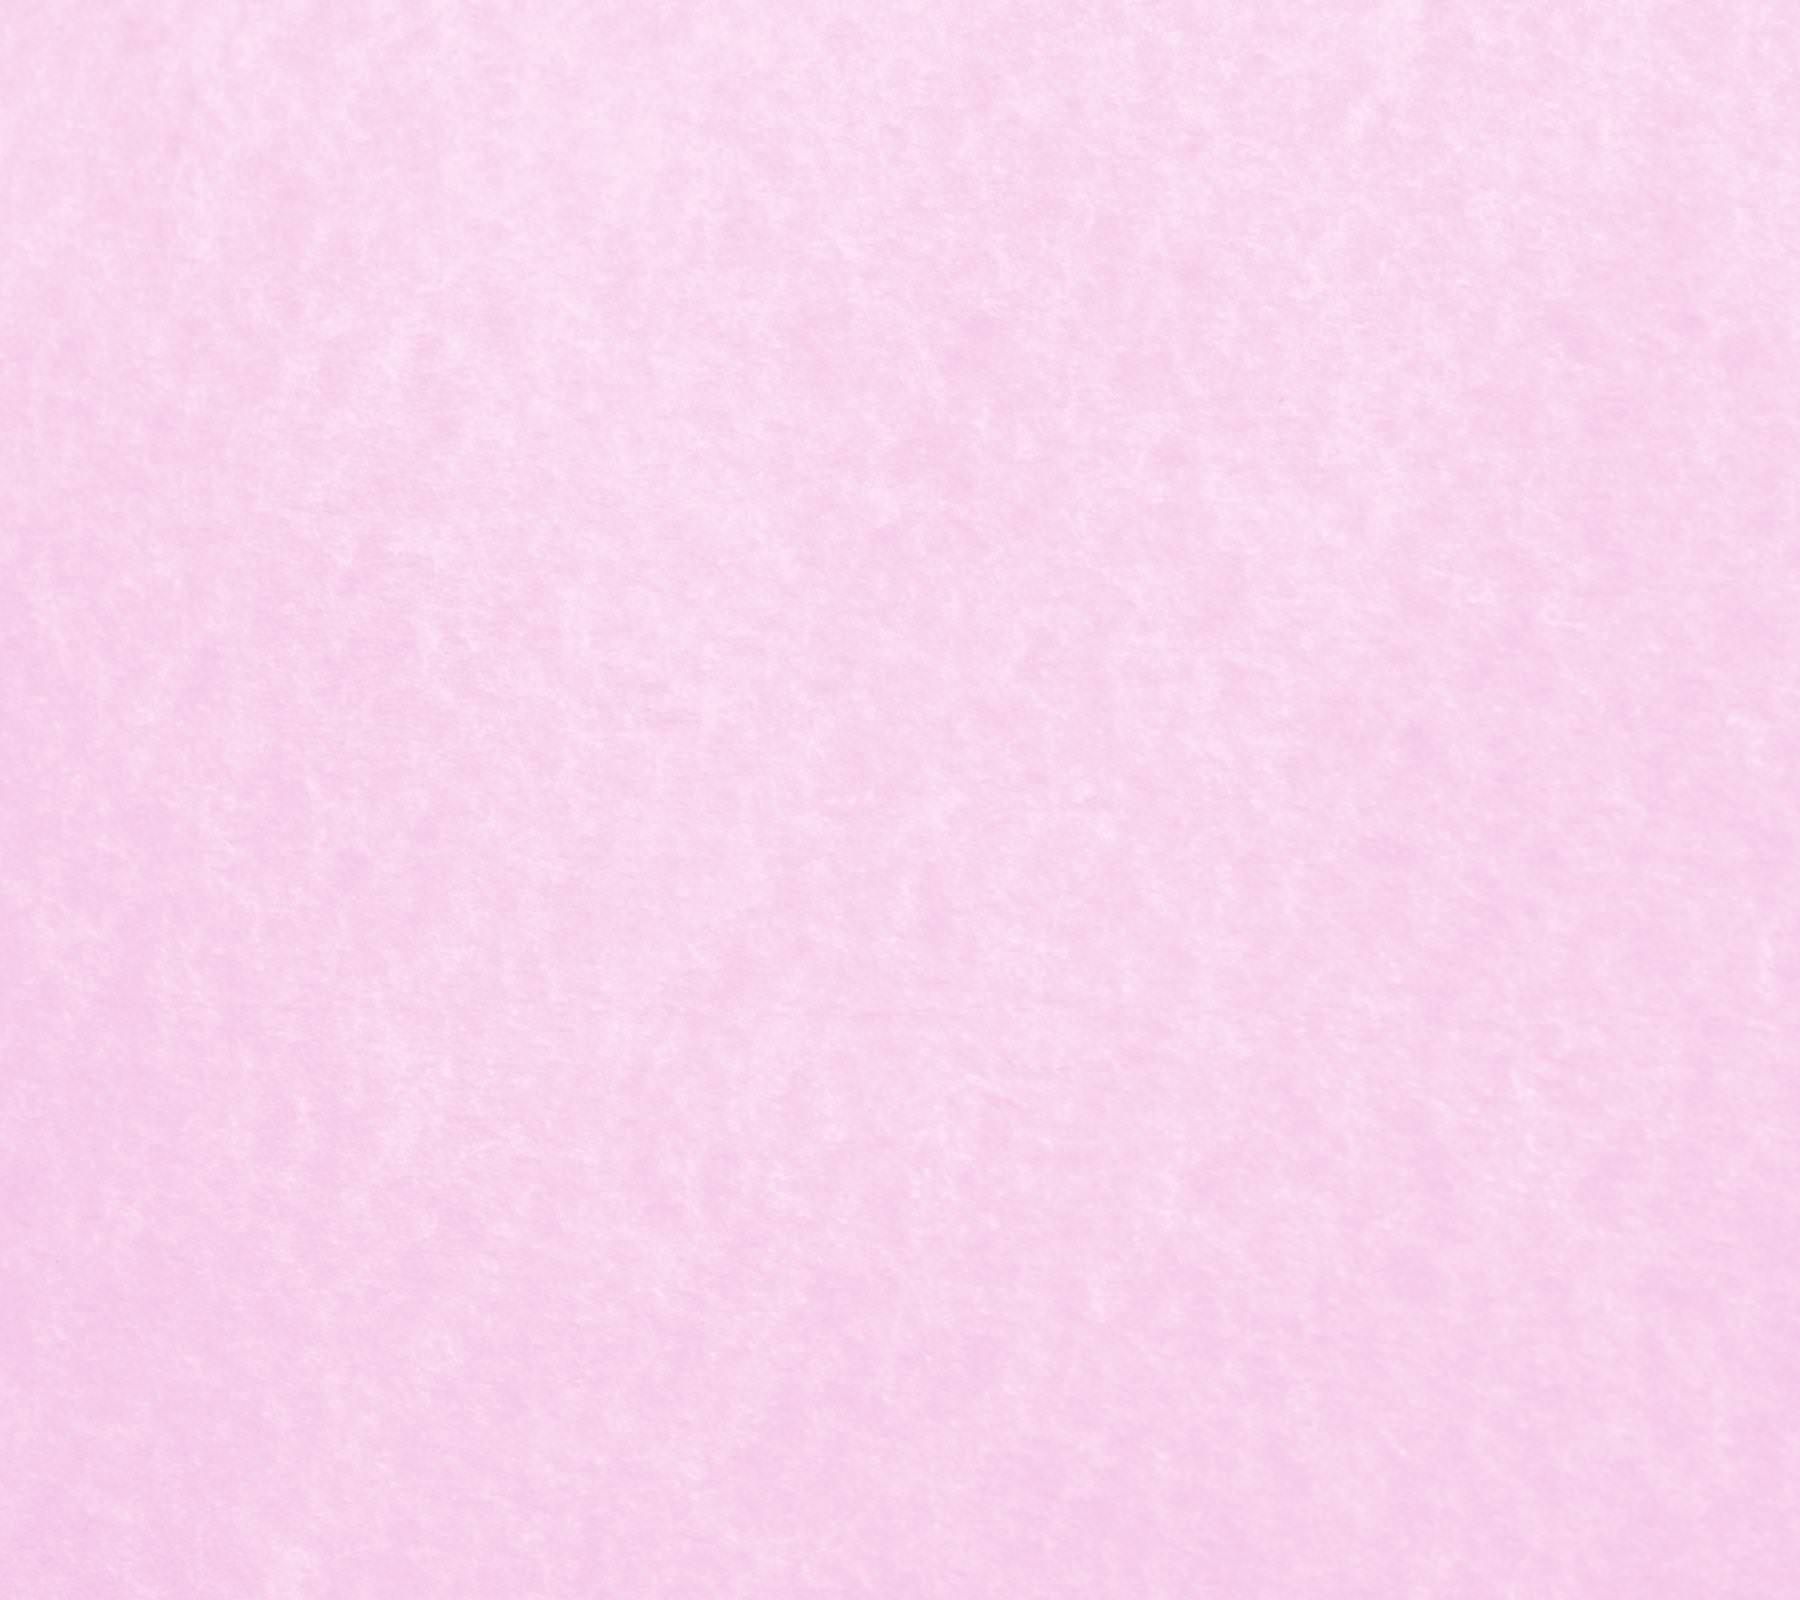 125+ Plain Backgrounds, Wallpapers, Images, Pictures ...